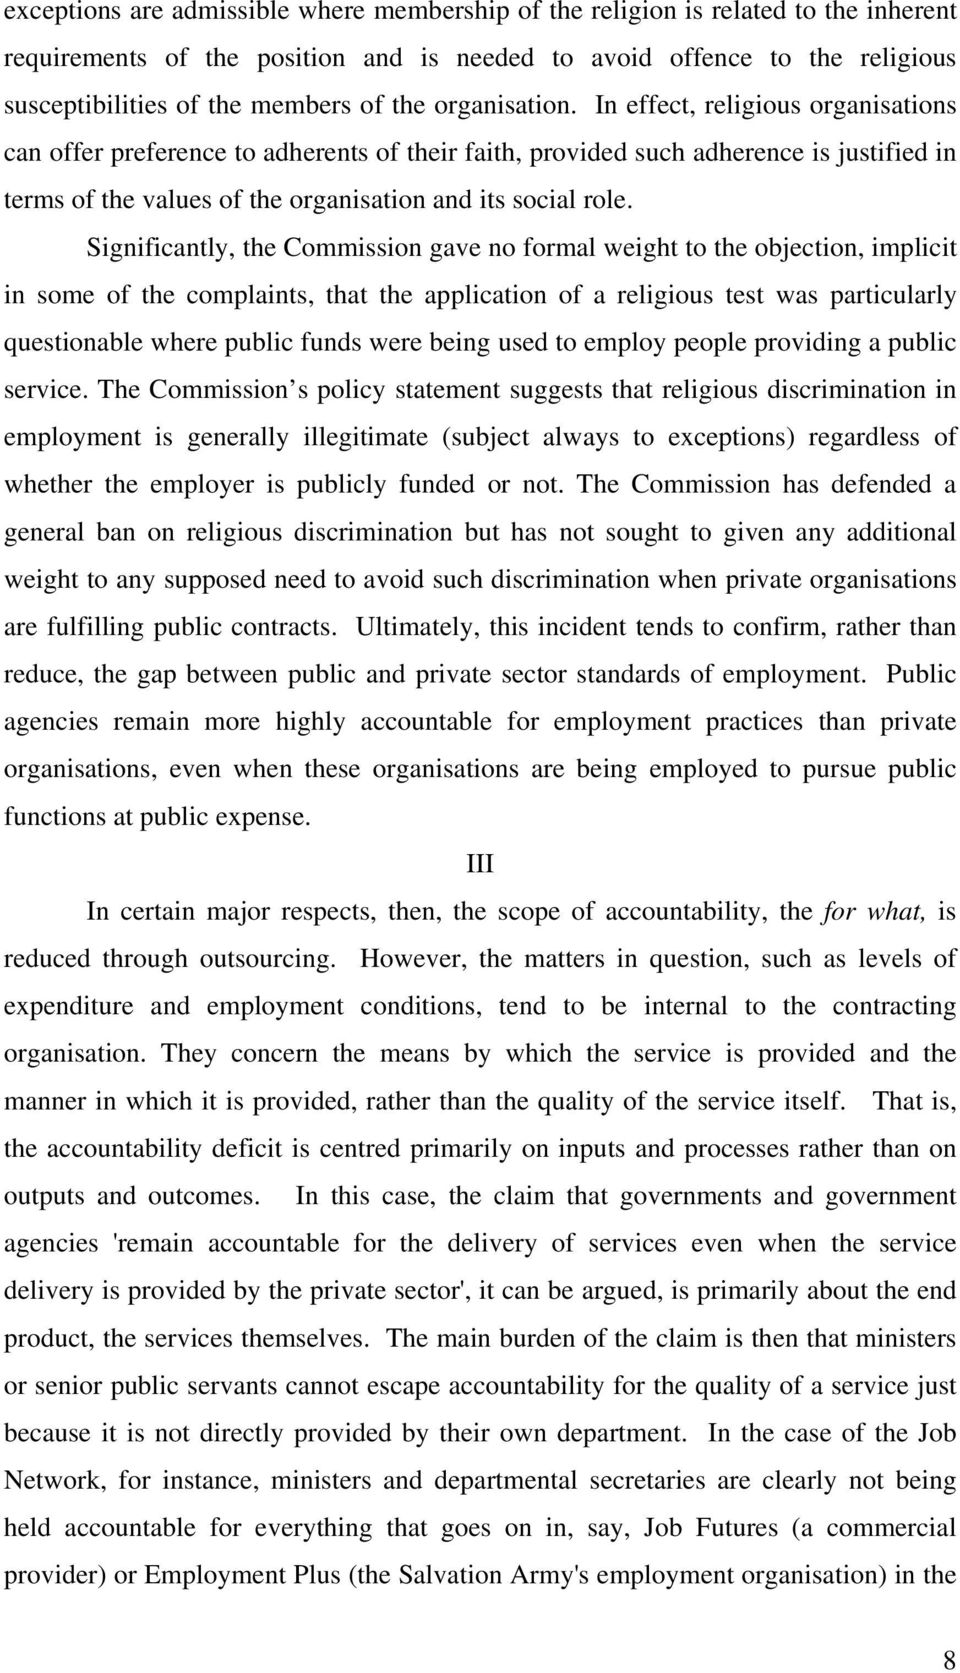 In effect, religious organisations can offer preference to adherents of their faith, provided such adherence is justified in terms of the values of the organisation and its social role.